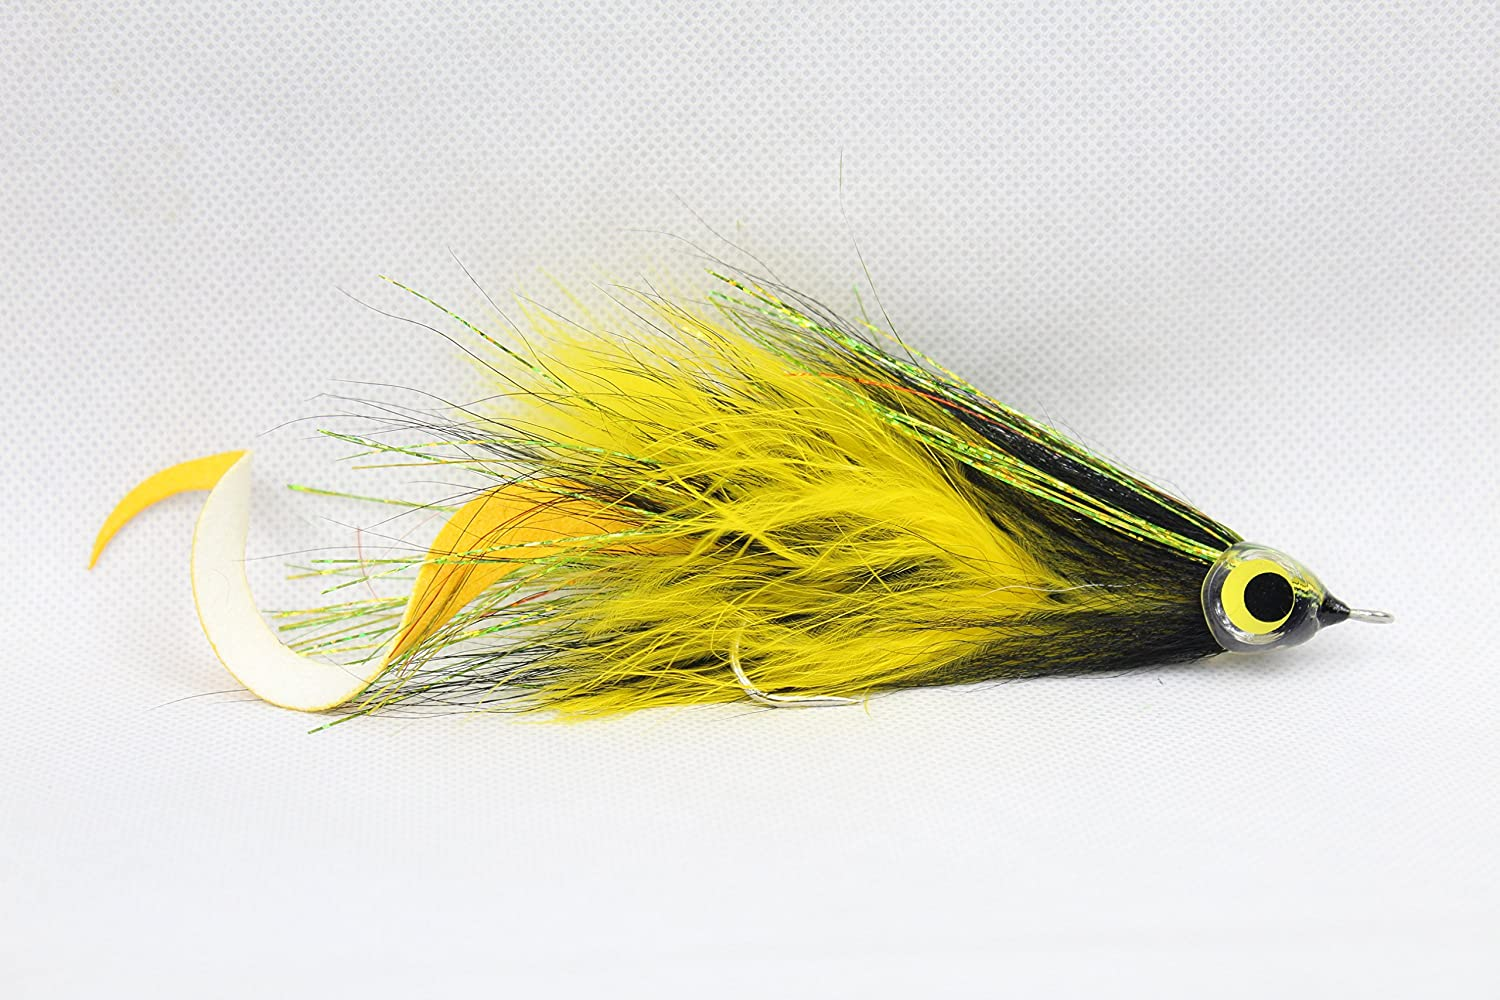 Haggerty Lures Curly Tailed Jointed Muskie Pike Fly Musky Fishing Lure